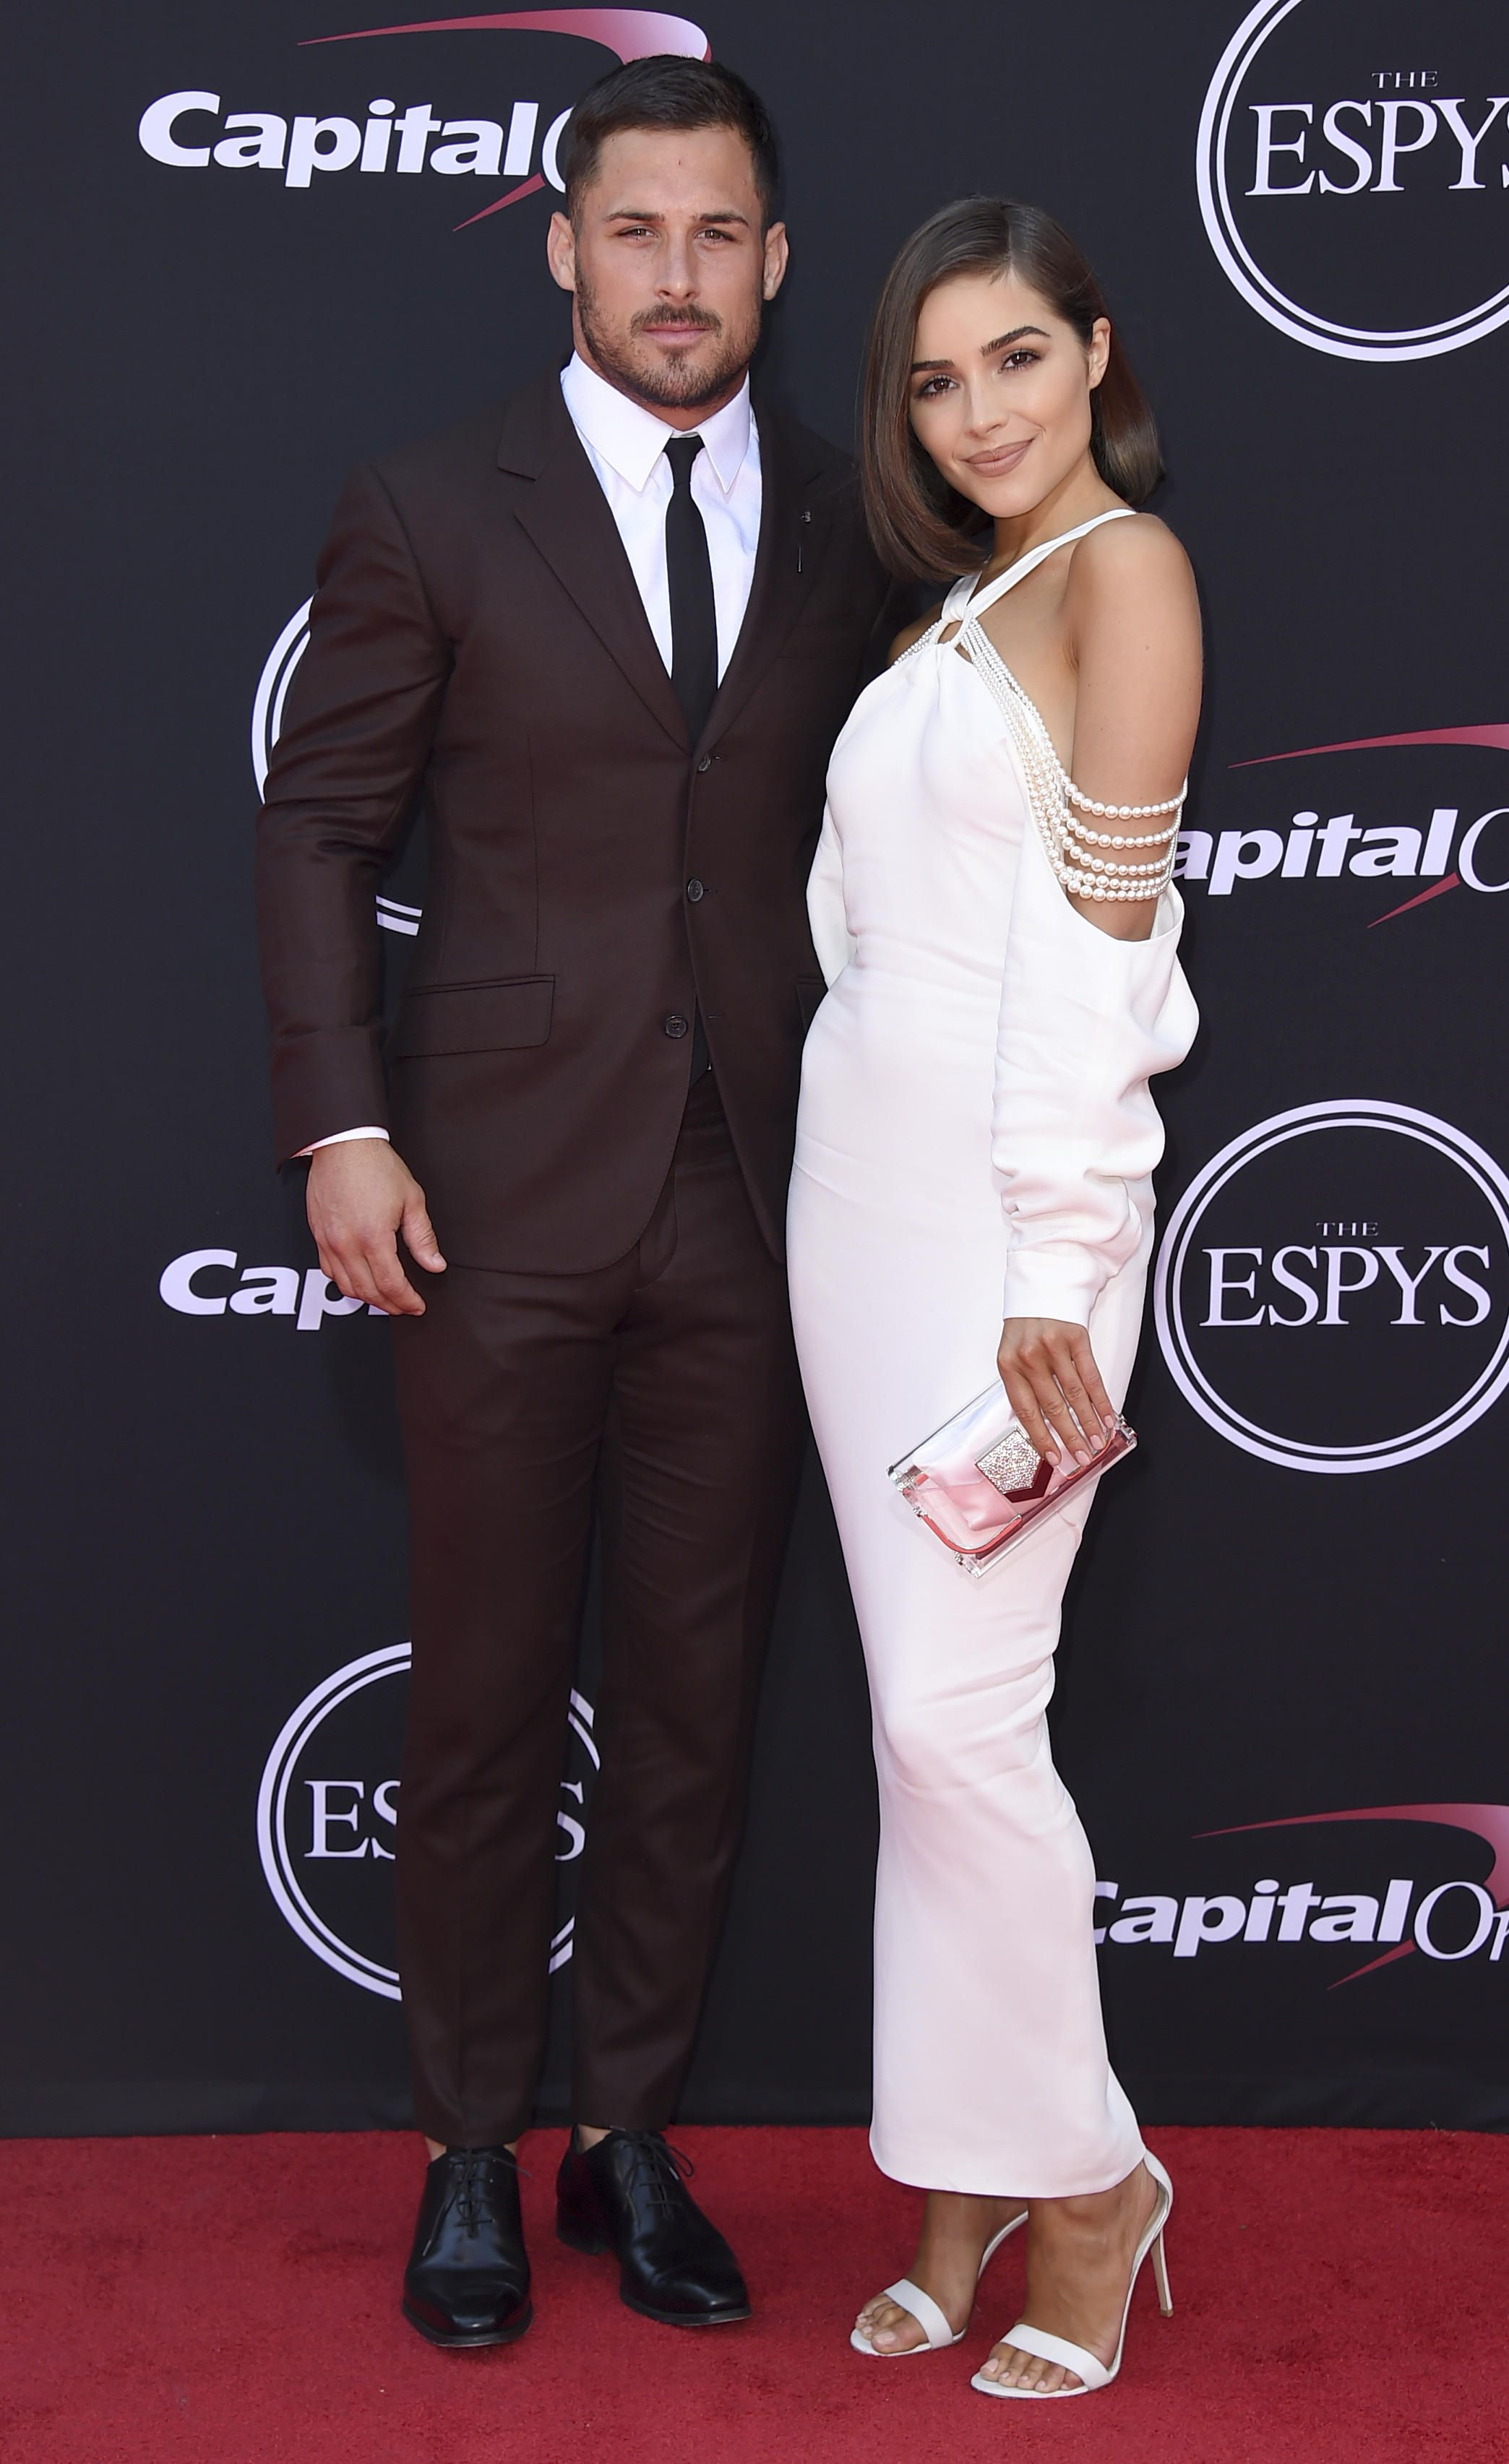 Patriots Hit The Red Carpet At The Espys Red Carpet Celebrity Couples Olivia Culpo